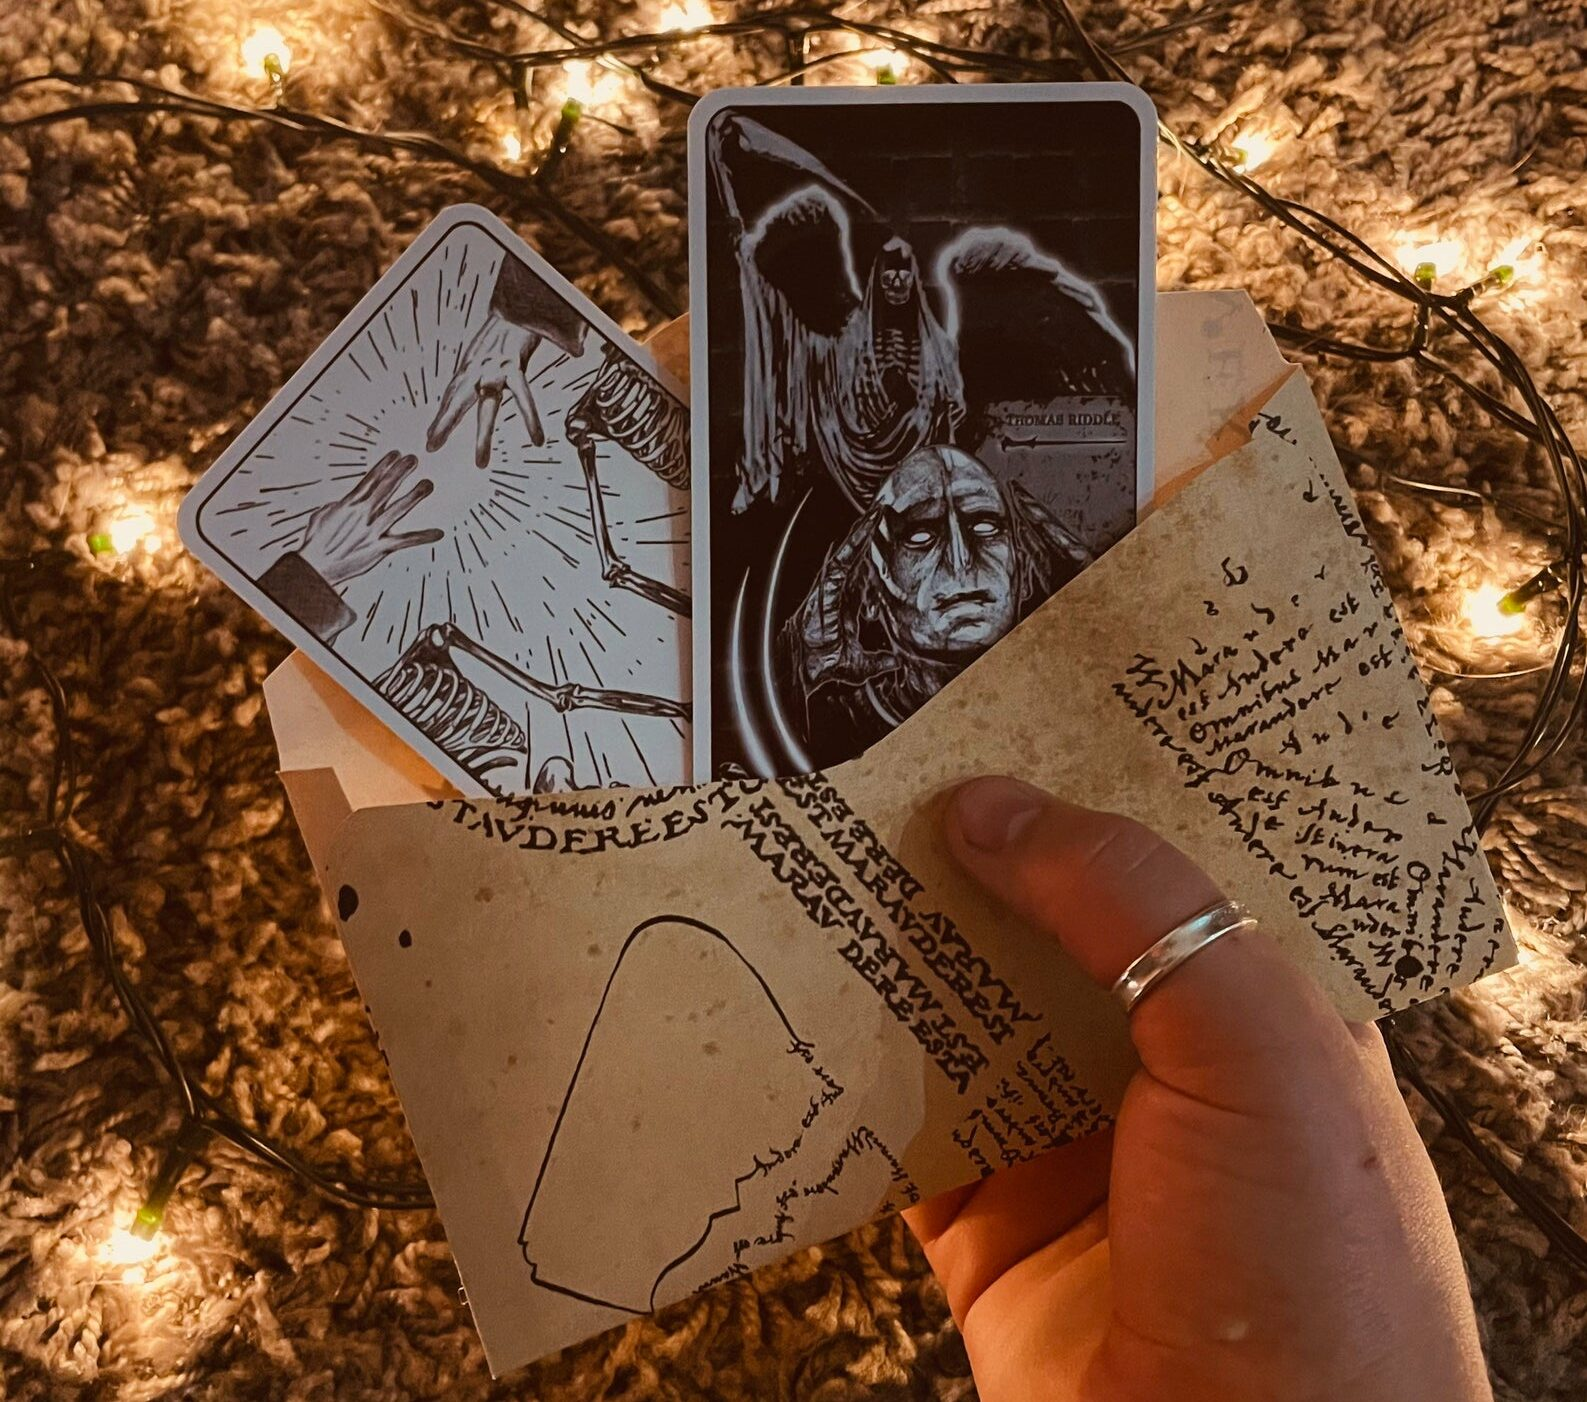 [Image description: a hand holds up an envelope with two tarot cards sticking out. The cards are designed in black and white ] via Etsy